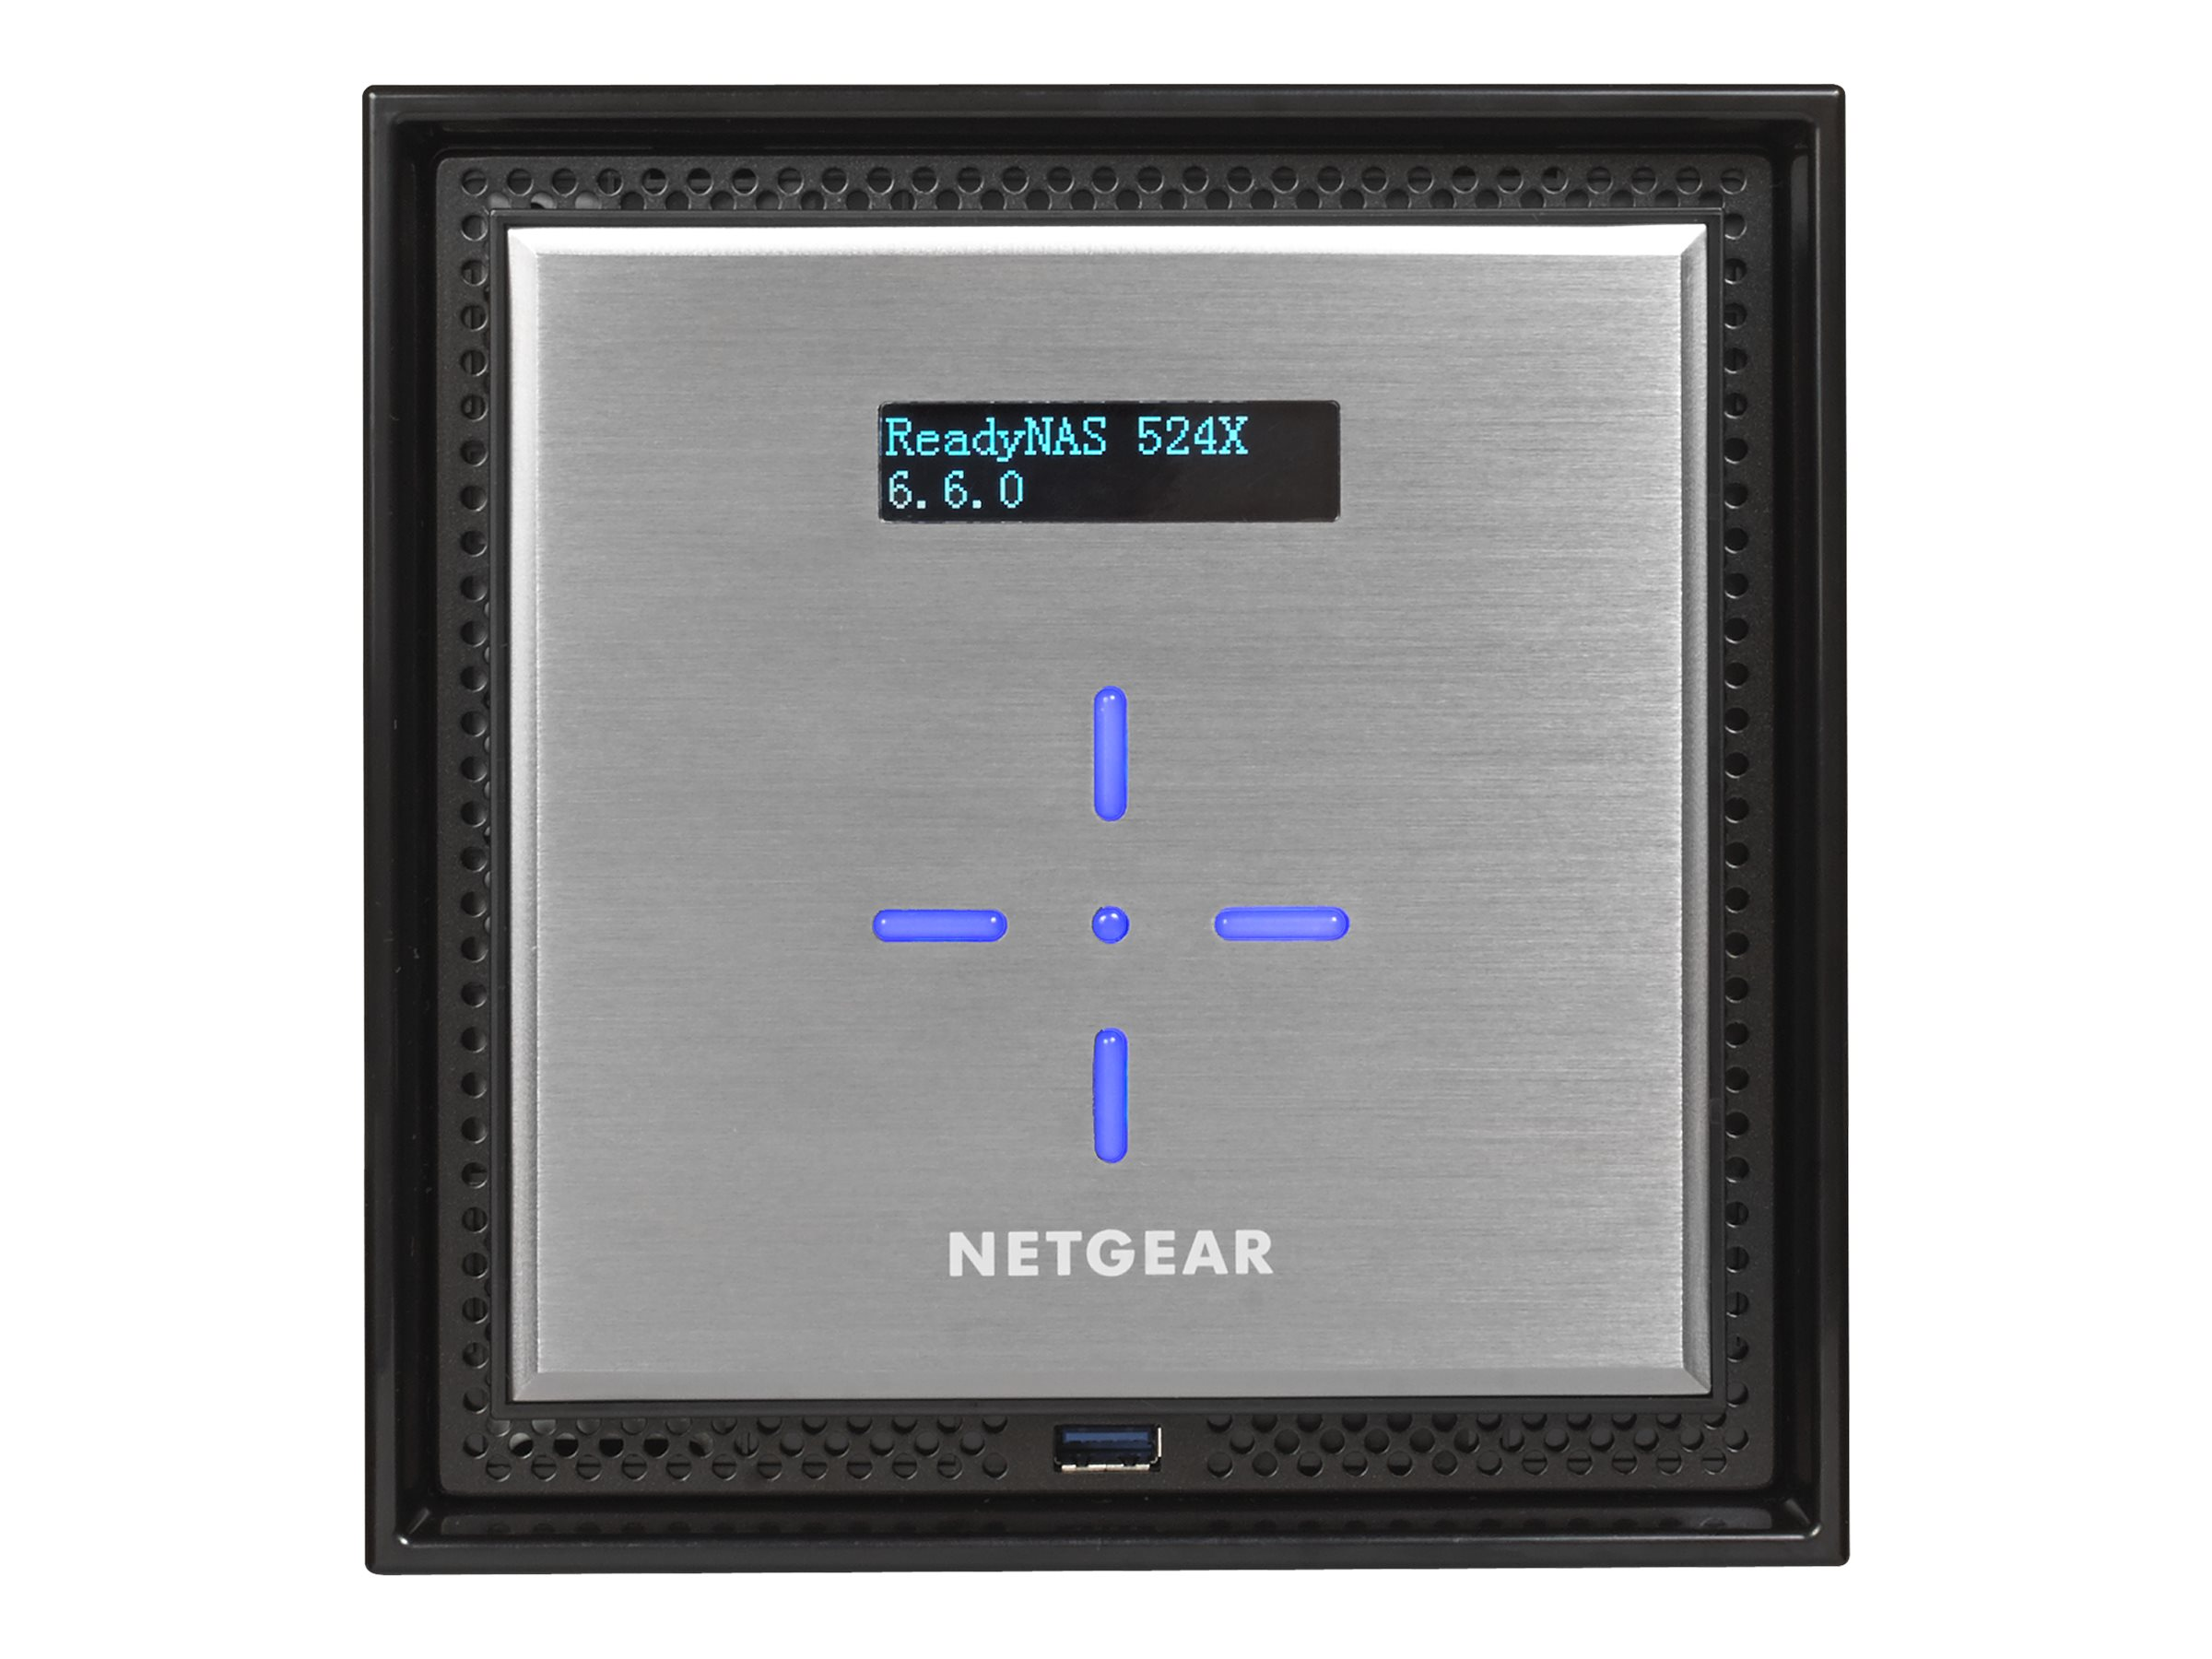 Netgear ReadyNAS 524X Premium Performance Business Data Storage - Diskless, RN524X00-100NES